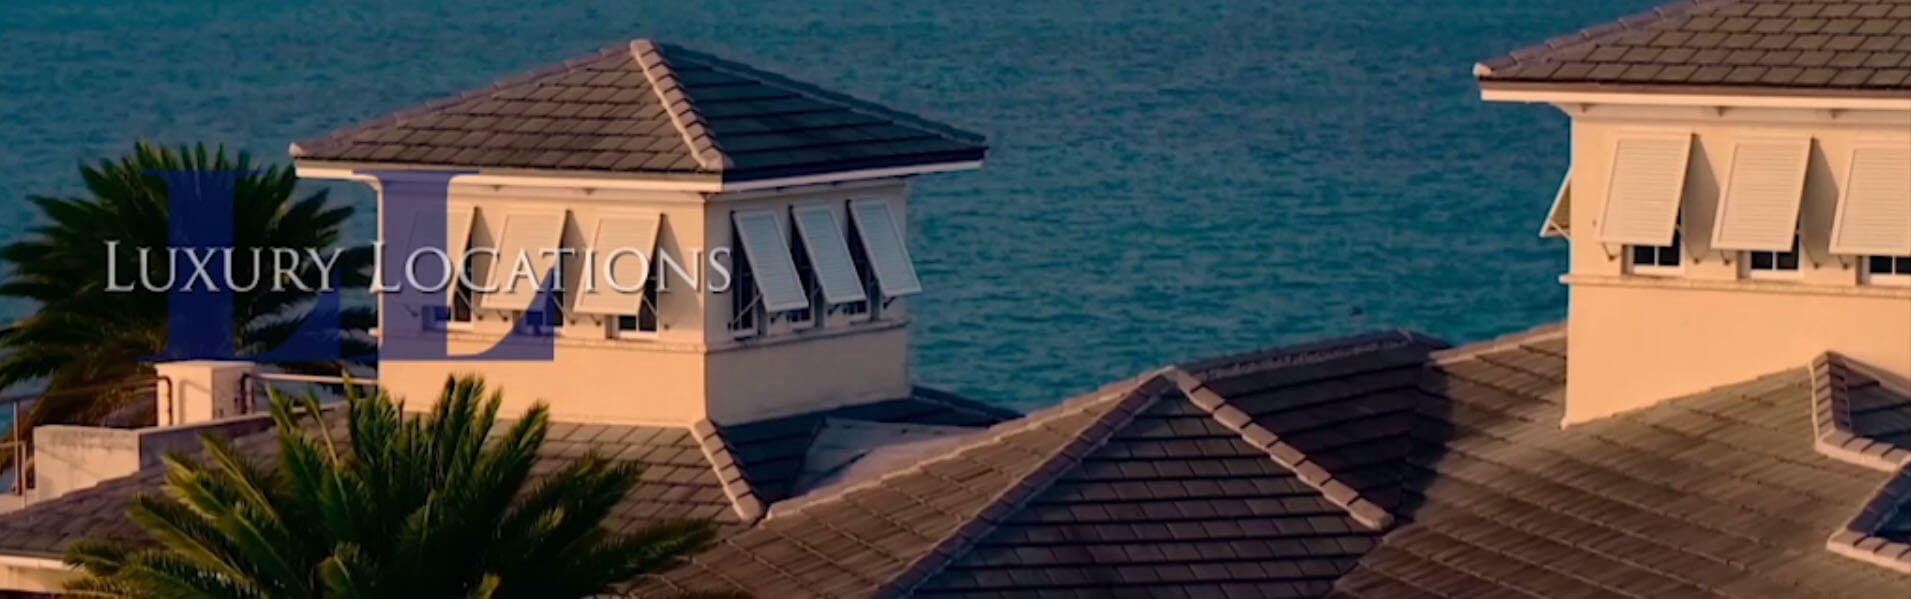 Antigua Real Estate Property Buy & Sell